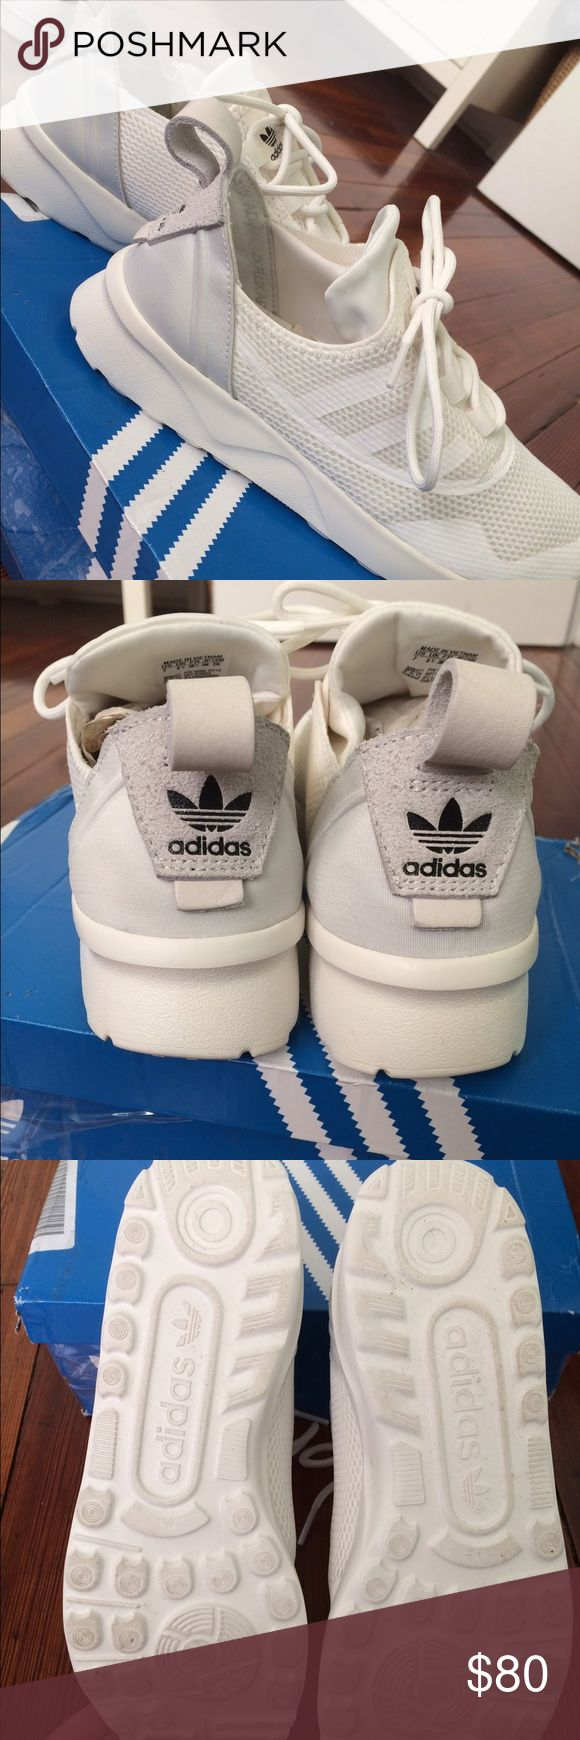 NWTIB White Adidas ZX FLUX ADV New with tags, new in box white Adidas ZX FLUX ADV sneakers. Super comfortable, perfect sneakers to wear with jeans or to the gym!! Offers welcome, no trades! Adidas Shoes Sneakers